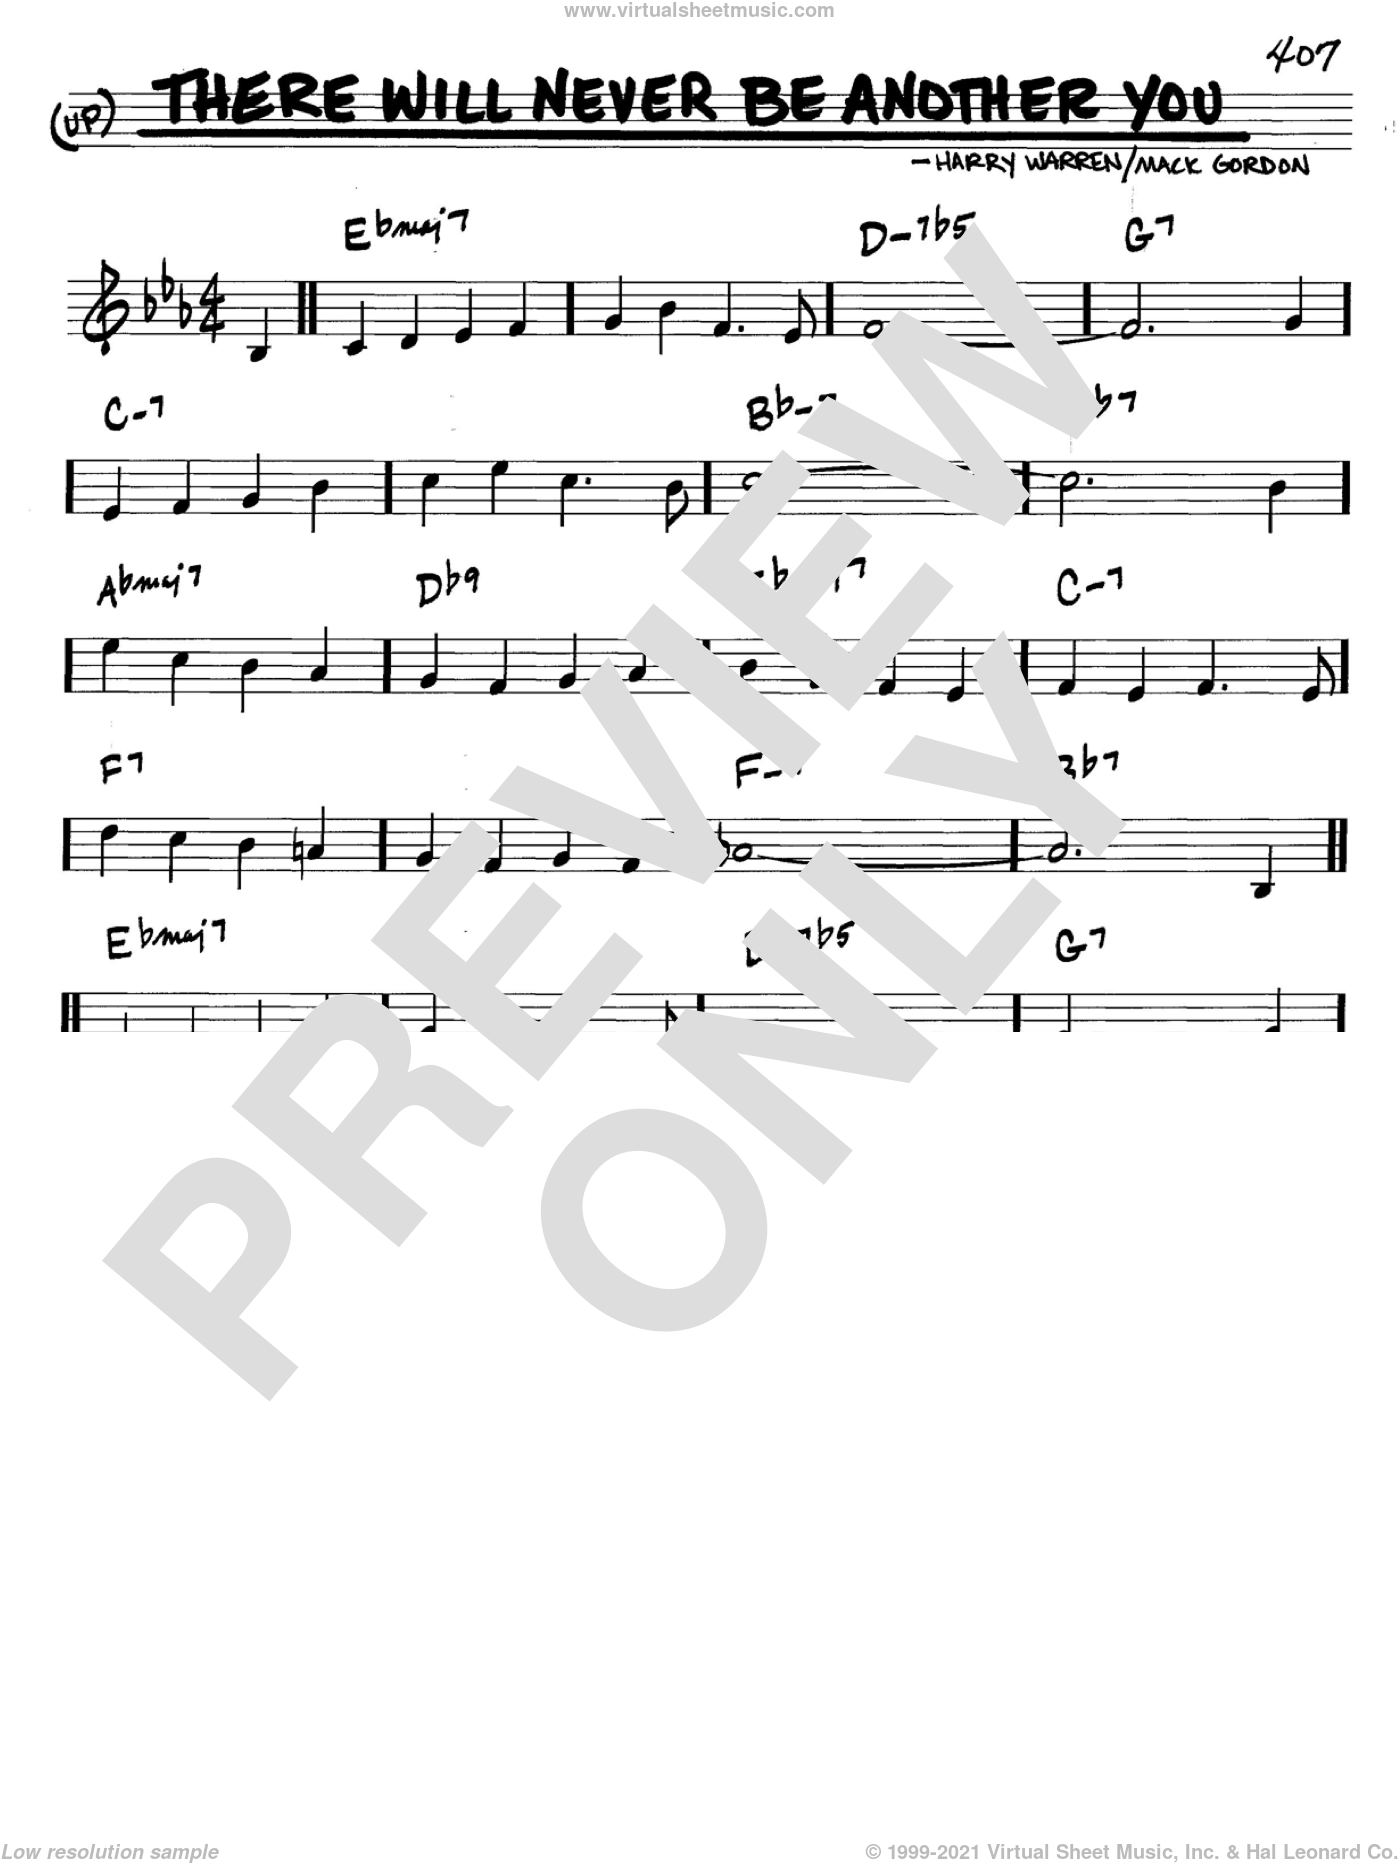 There Will Never Be Another You sheet music for voice and other instruments (in C) by Mack Gordon and Harry Warren, intermediate skill level